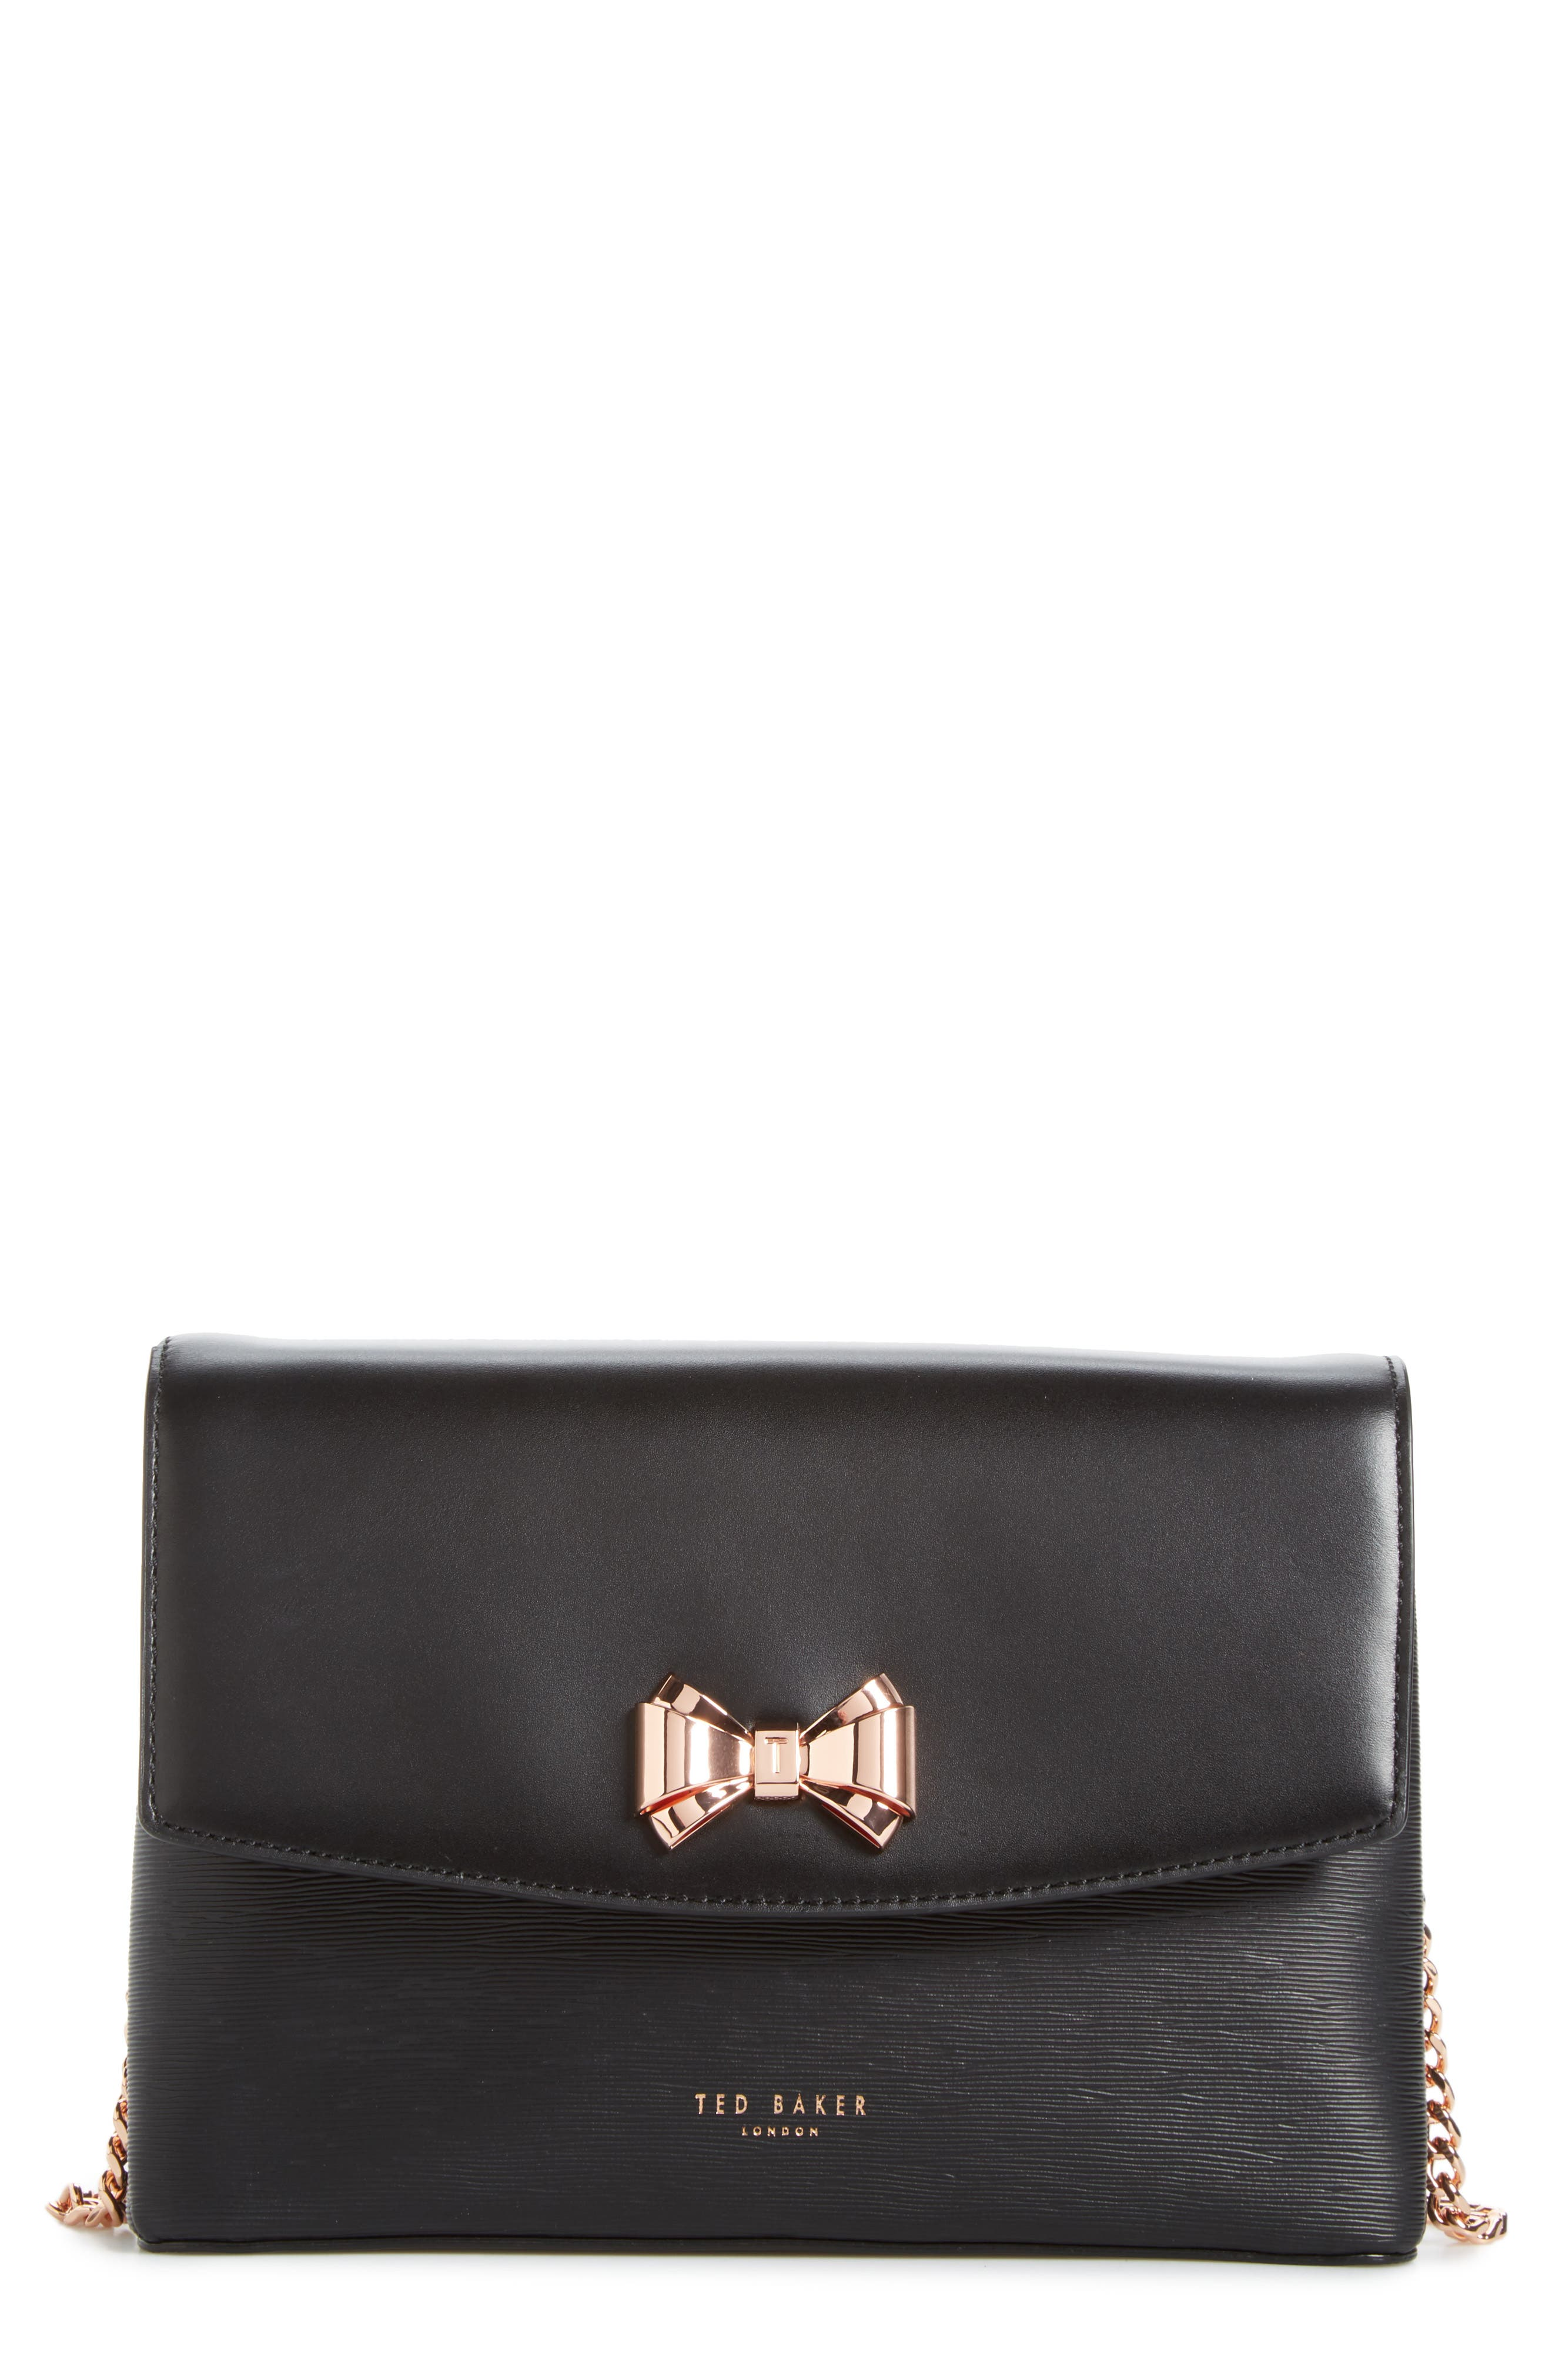 Ted Baker London Curved Bow Flap Leather Crossbody Satchel